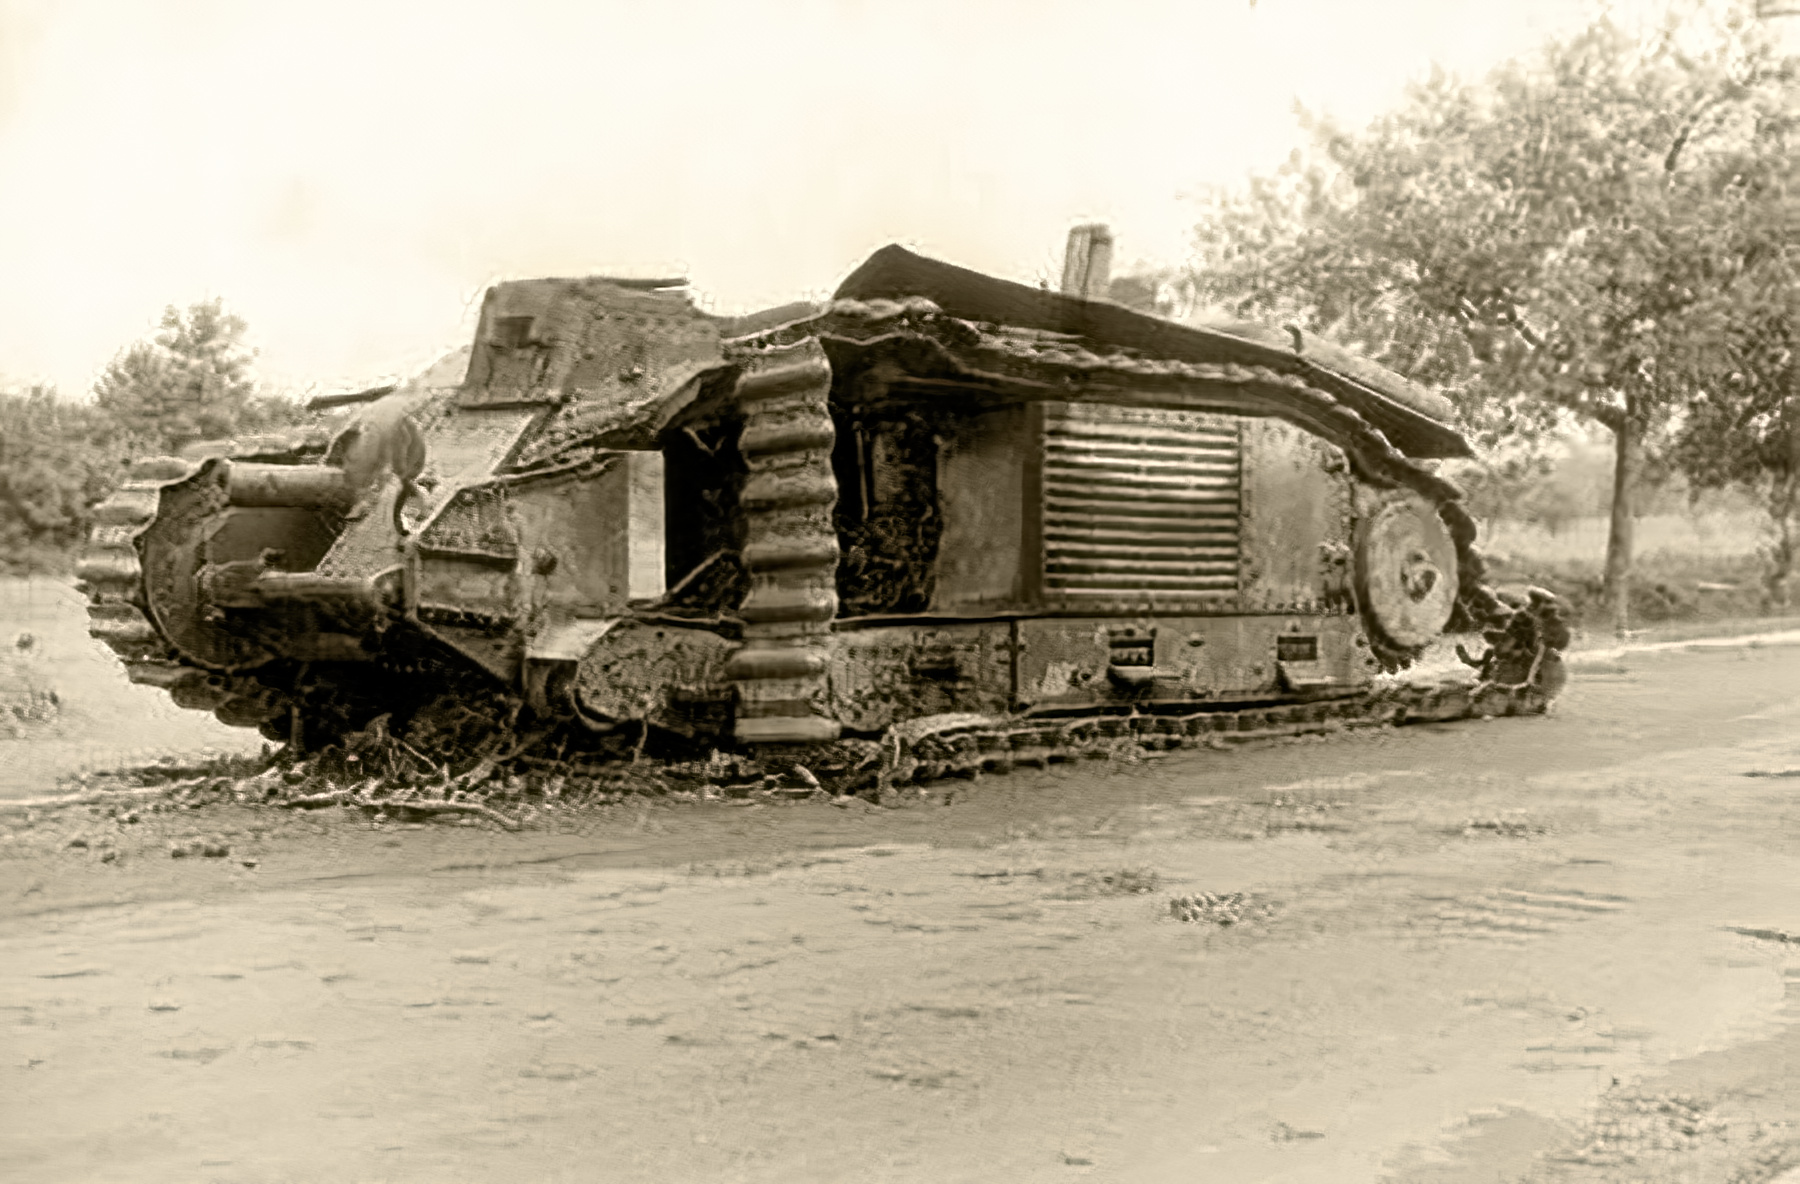 French Army Renault Char B1bis destroyed during the battle of France 1940 ebay 02